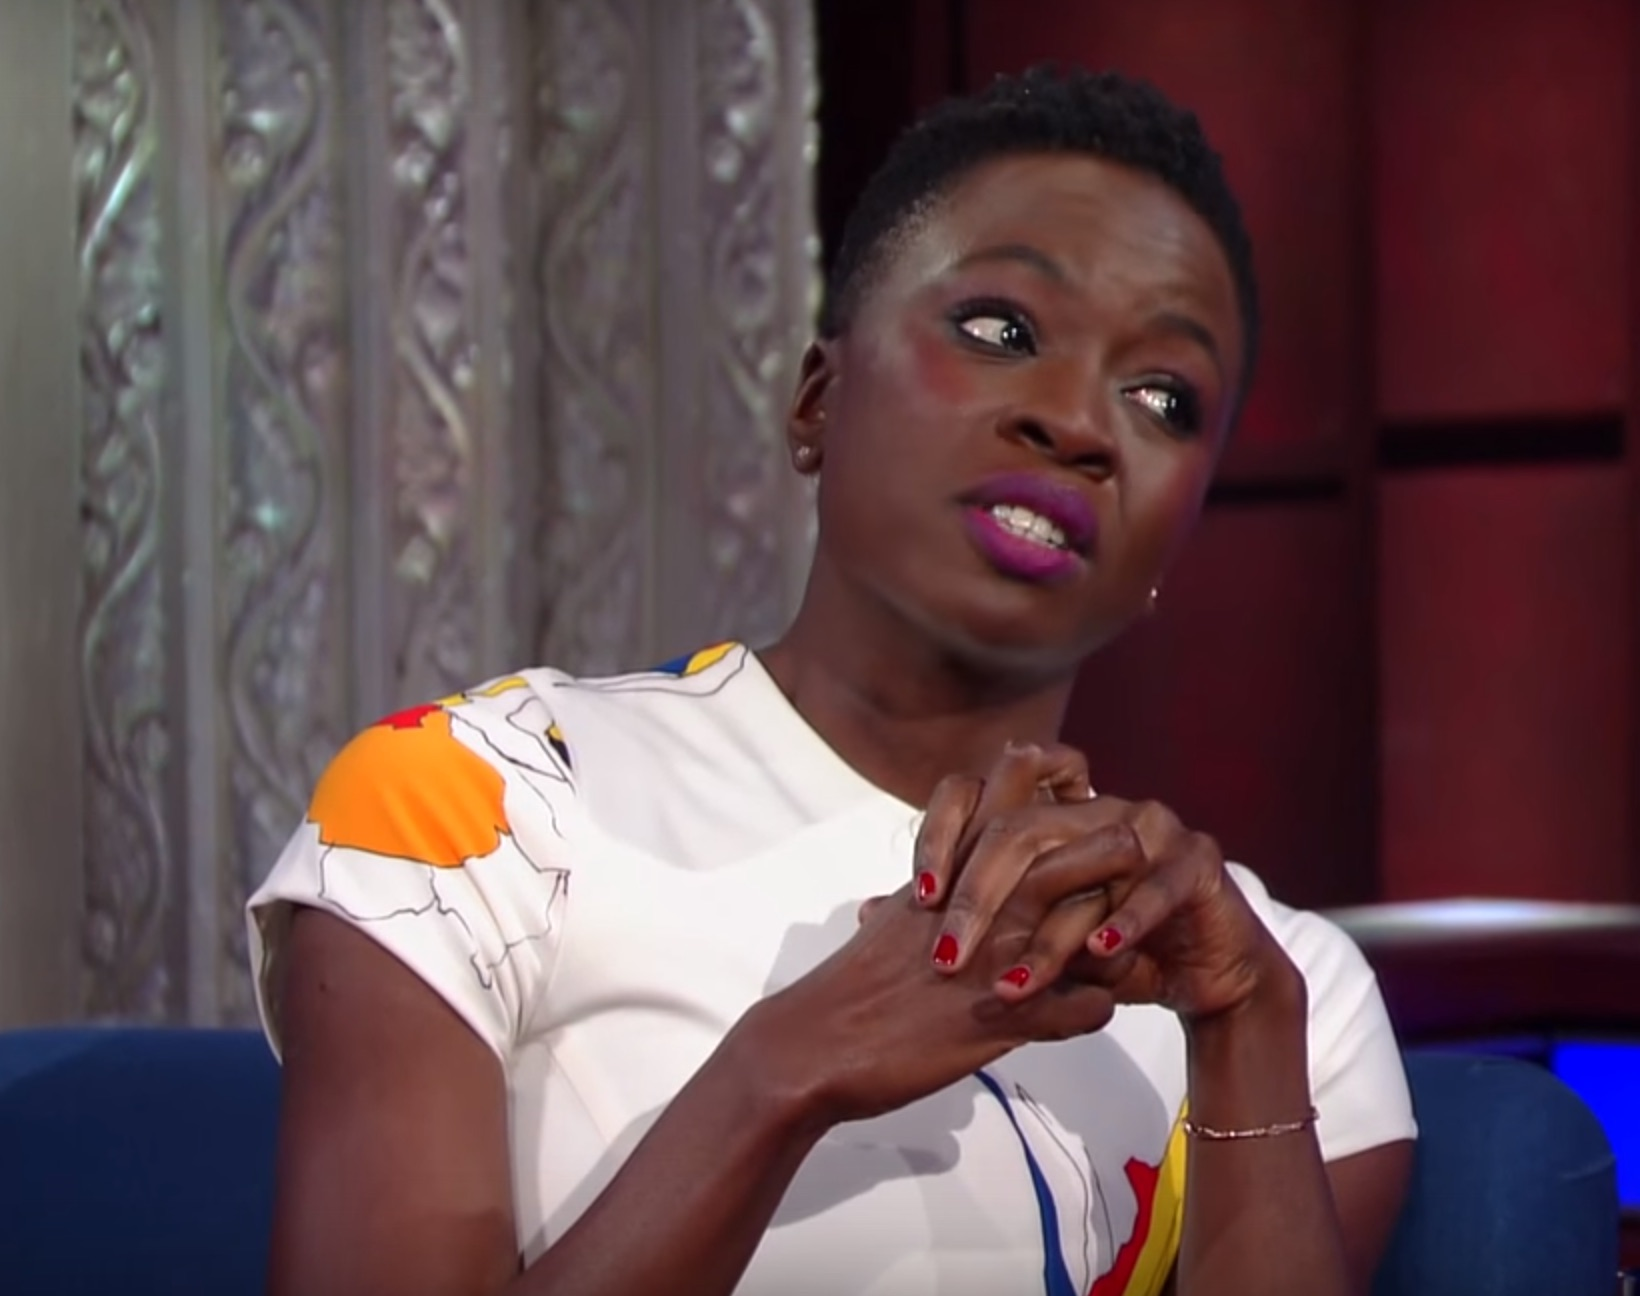 """The Walking Dead"" star Danai Gurira tells Stephen Colbert how to survive the zombie apocalypse"